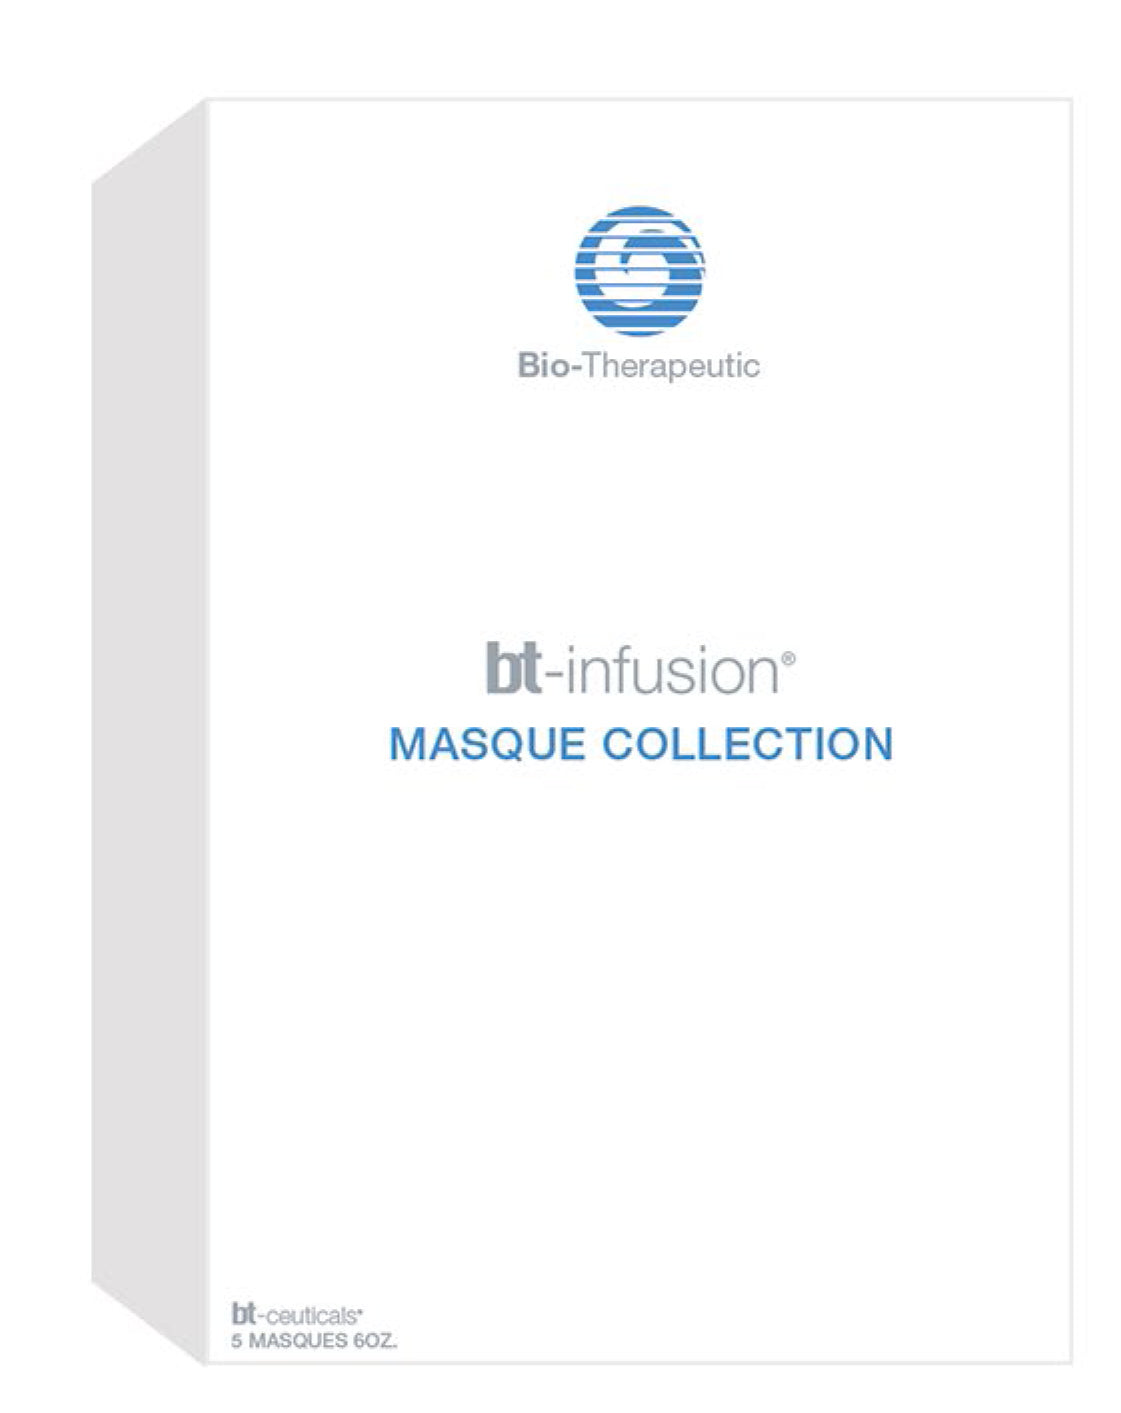 BT-Infusion complete masque